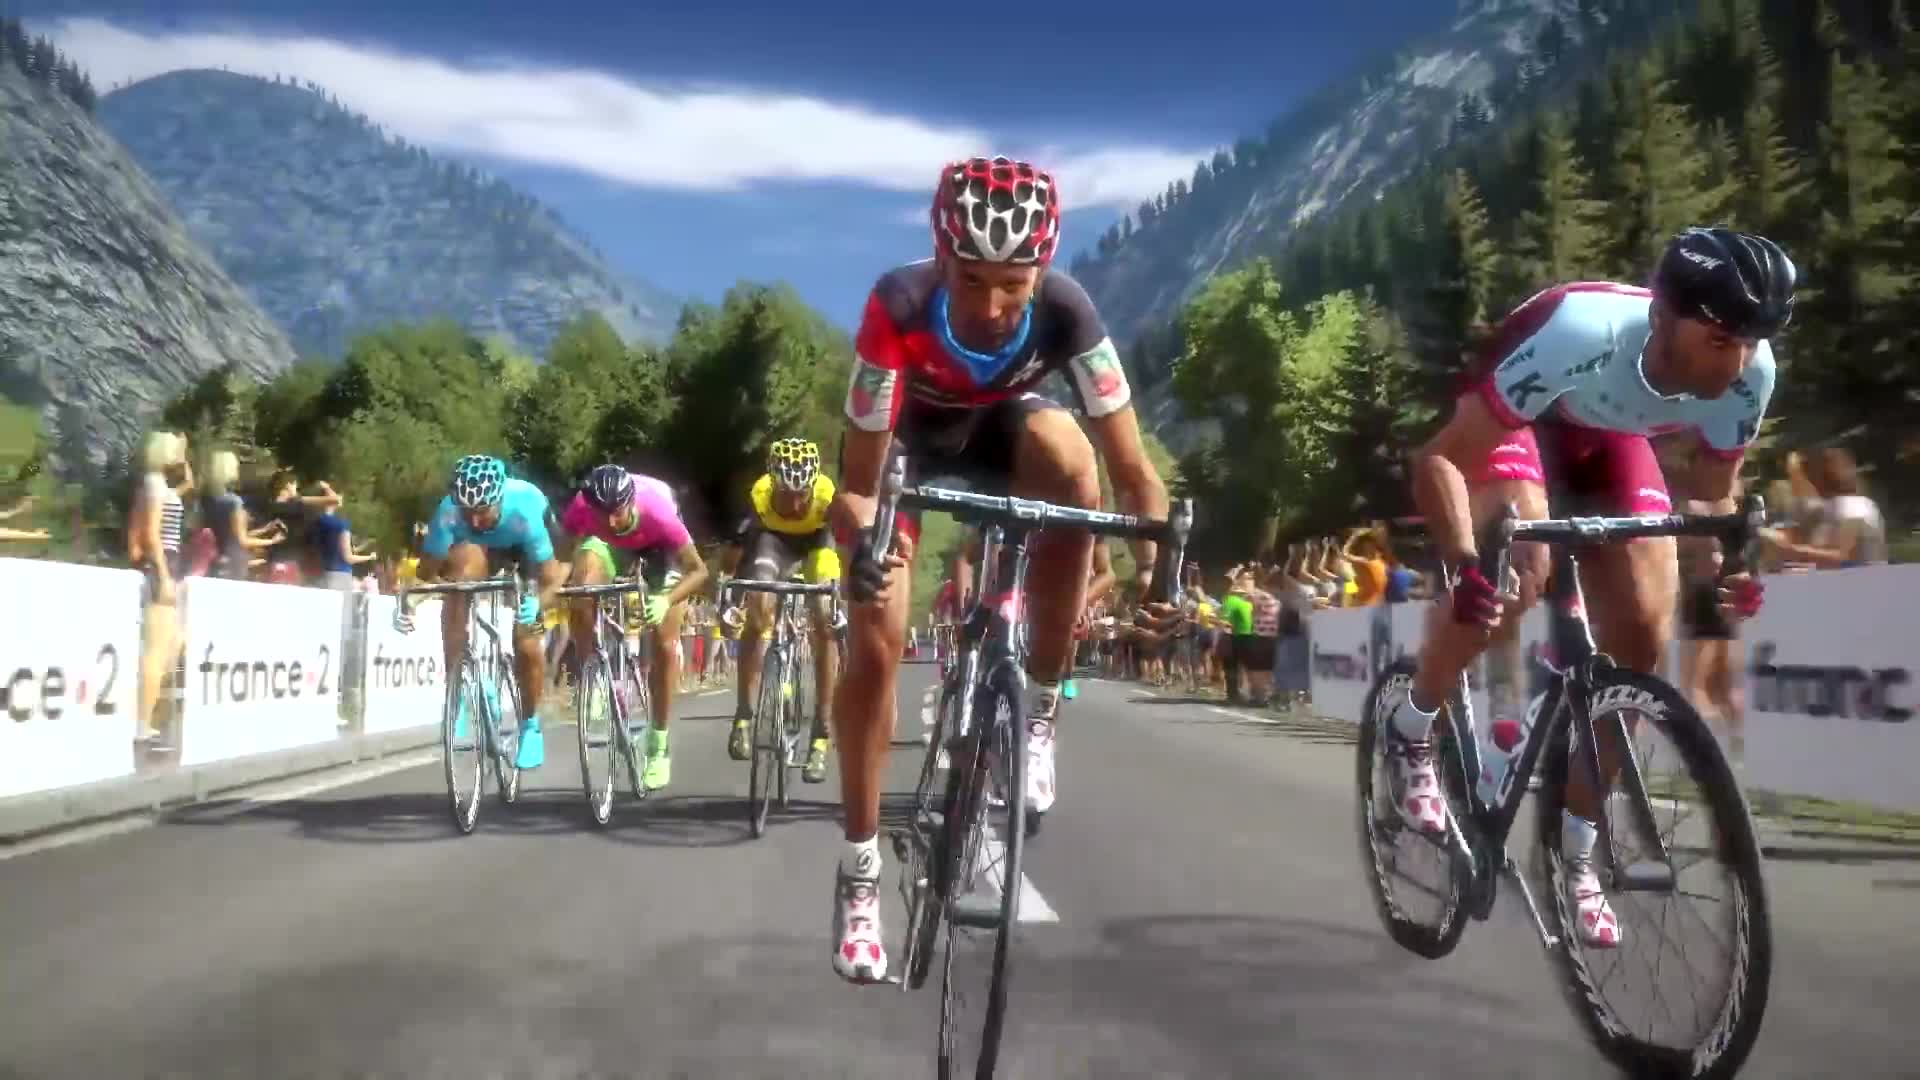 Tour de France / Pro Cycling Manager 2018 - Launch Trailer